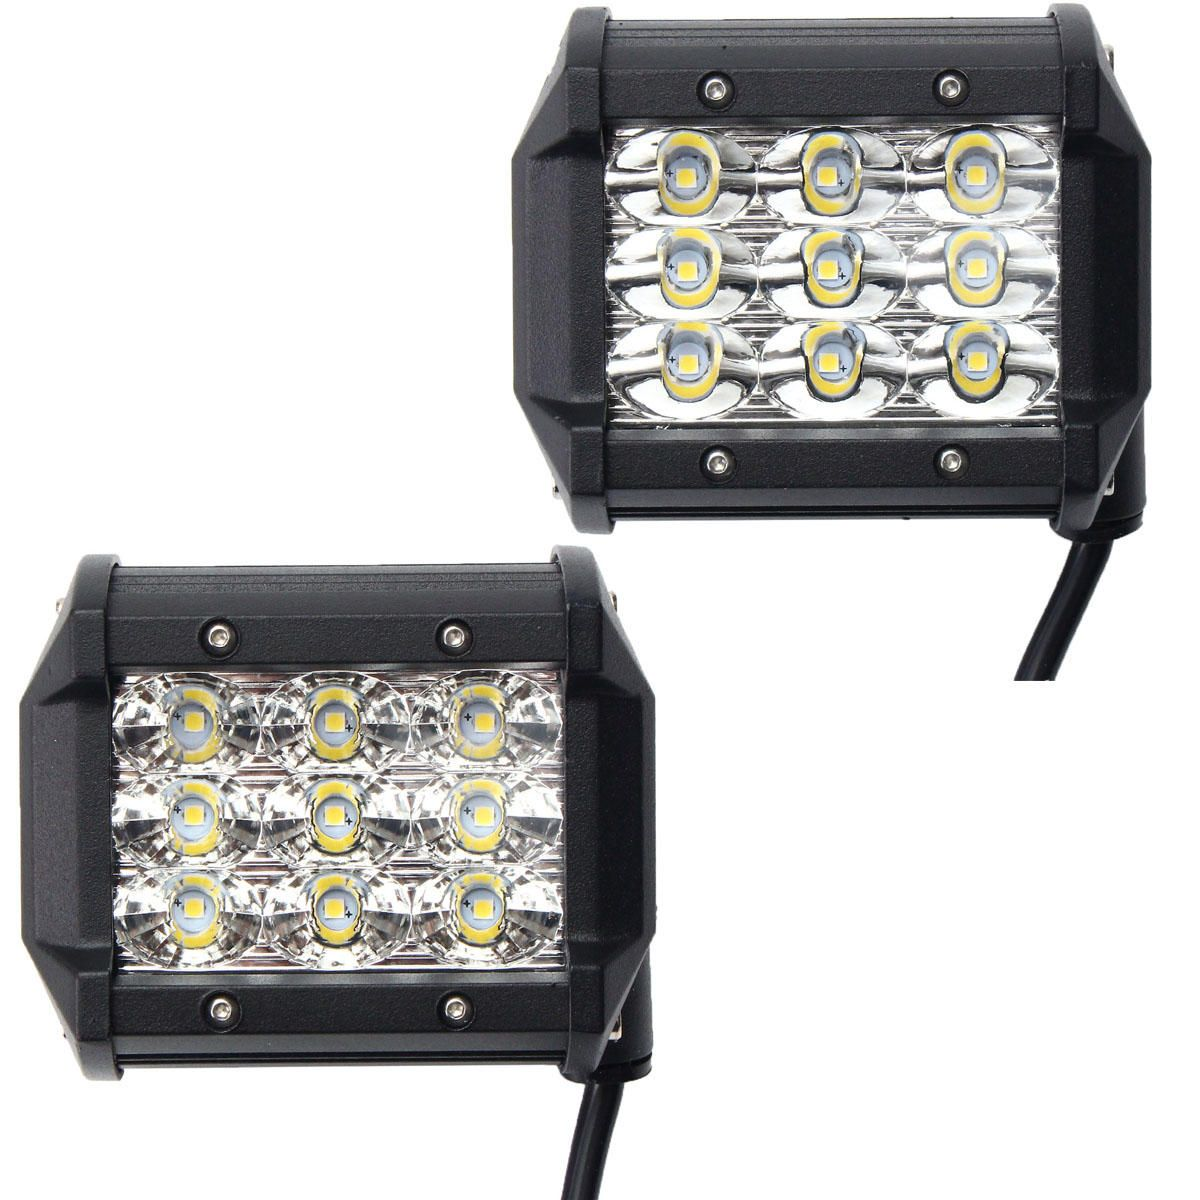 4 inch 54w led flood beam car offroad truck work light dc 10 30v 4 inch 54w led flood beam car offroad truck work light dc 10 30v aloadofball Image collections